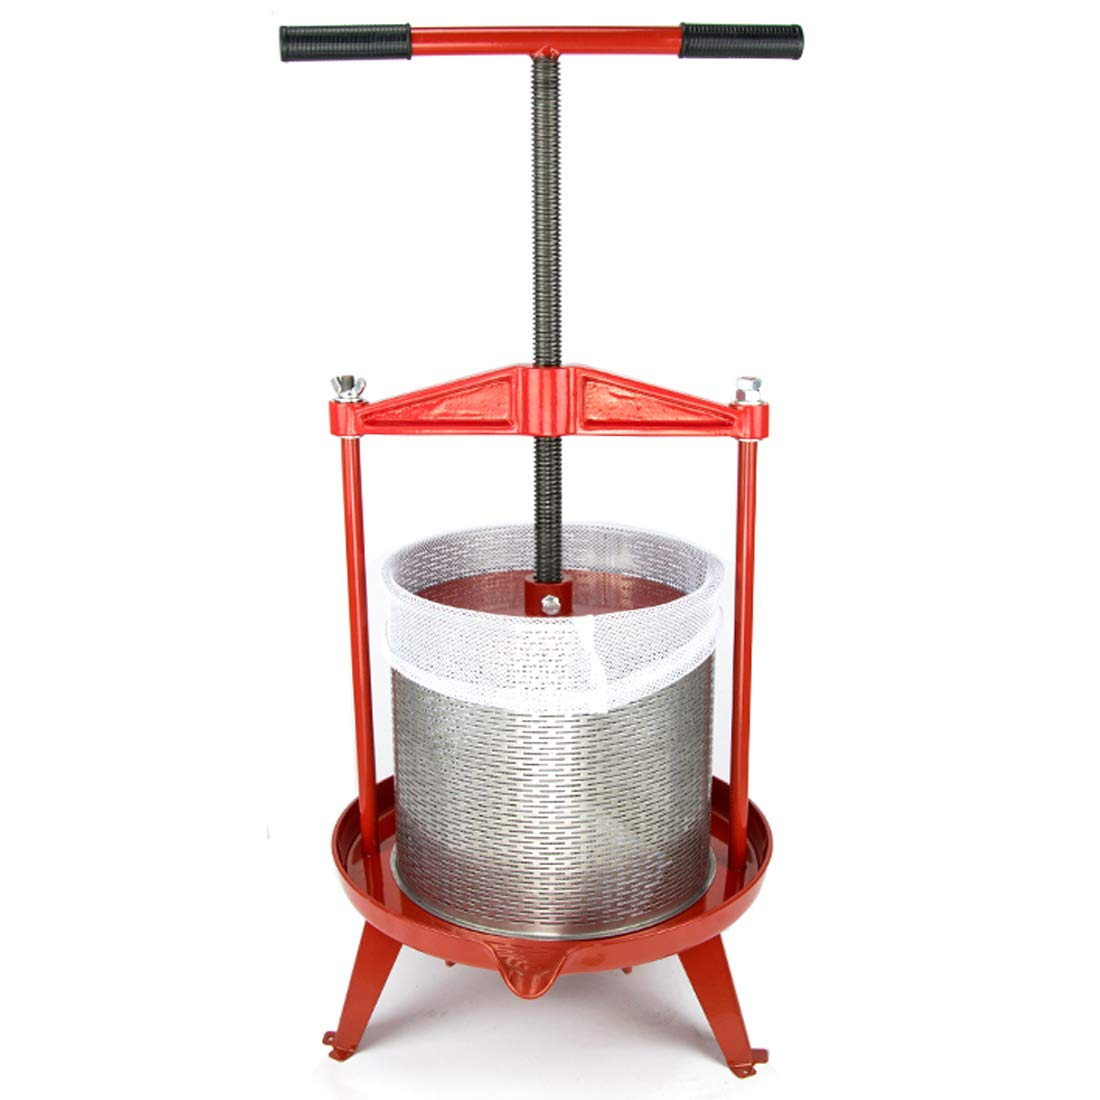 3.69 Gallon Heavy-duty Cross-beam Stainless Steel Fruit and Wine Press by EJWOX